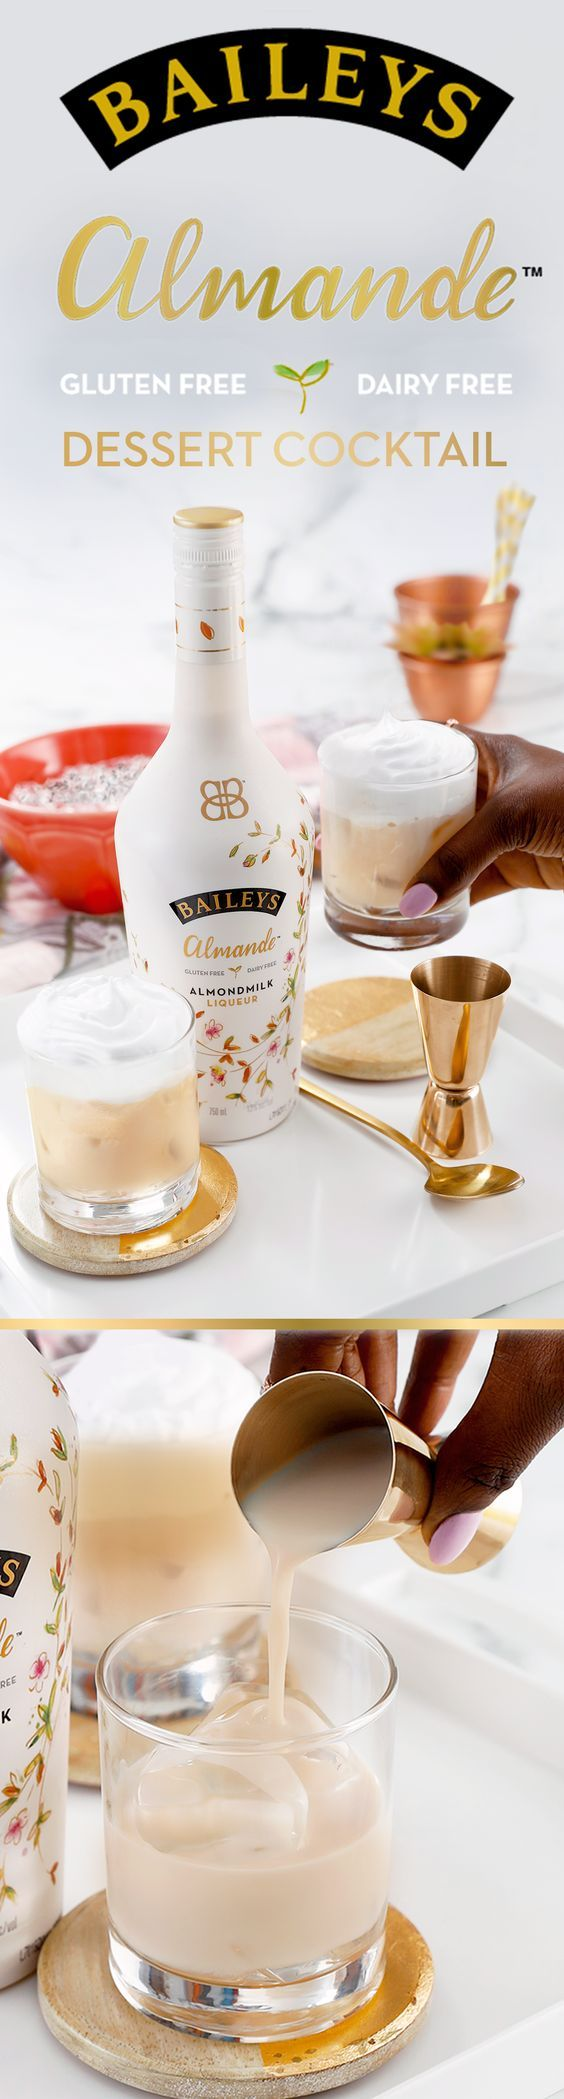 Serve a dairy free dessert on the rocks—with Baileys Almande. Whether it's cozy winter date night or girls night in, this simple almondmilk liqueur is the perfect after-dinner treat - and it's dairy free, gluten free, and vegan. For our light-tasting Vanilla Bean Cocktail, simply pour 2 oz Baileys Almande, .5 oz Vanilla Bean Simple Syrup over crushed ice and top with whipped topping.